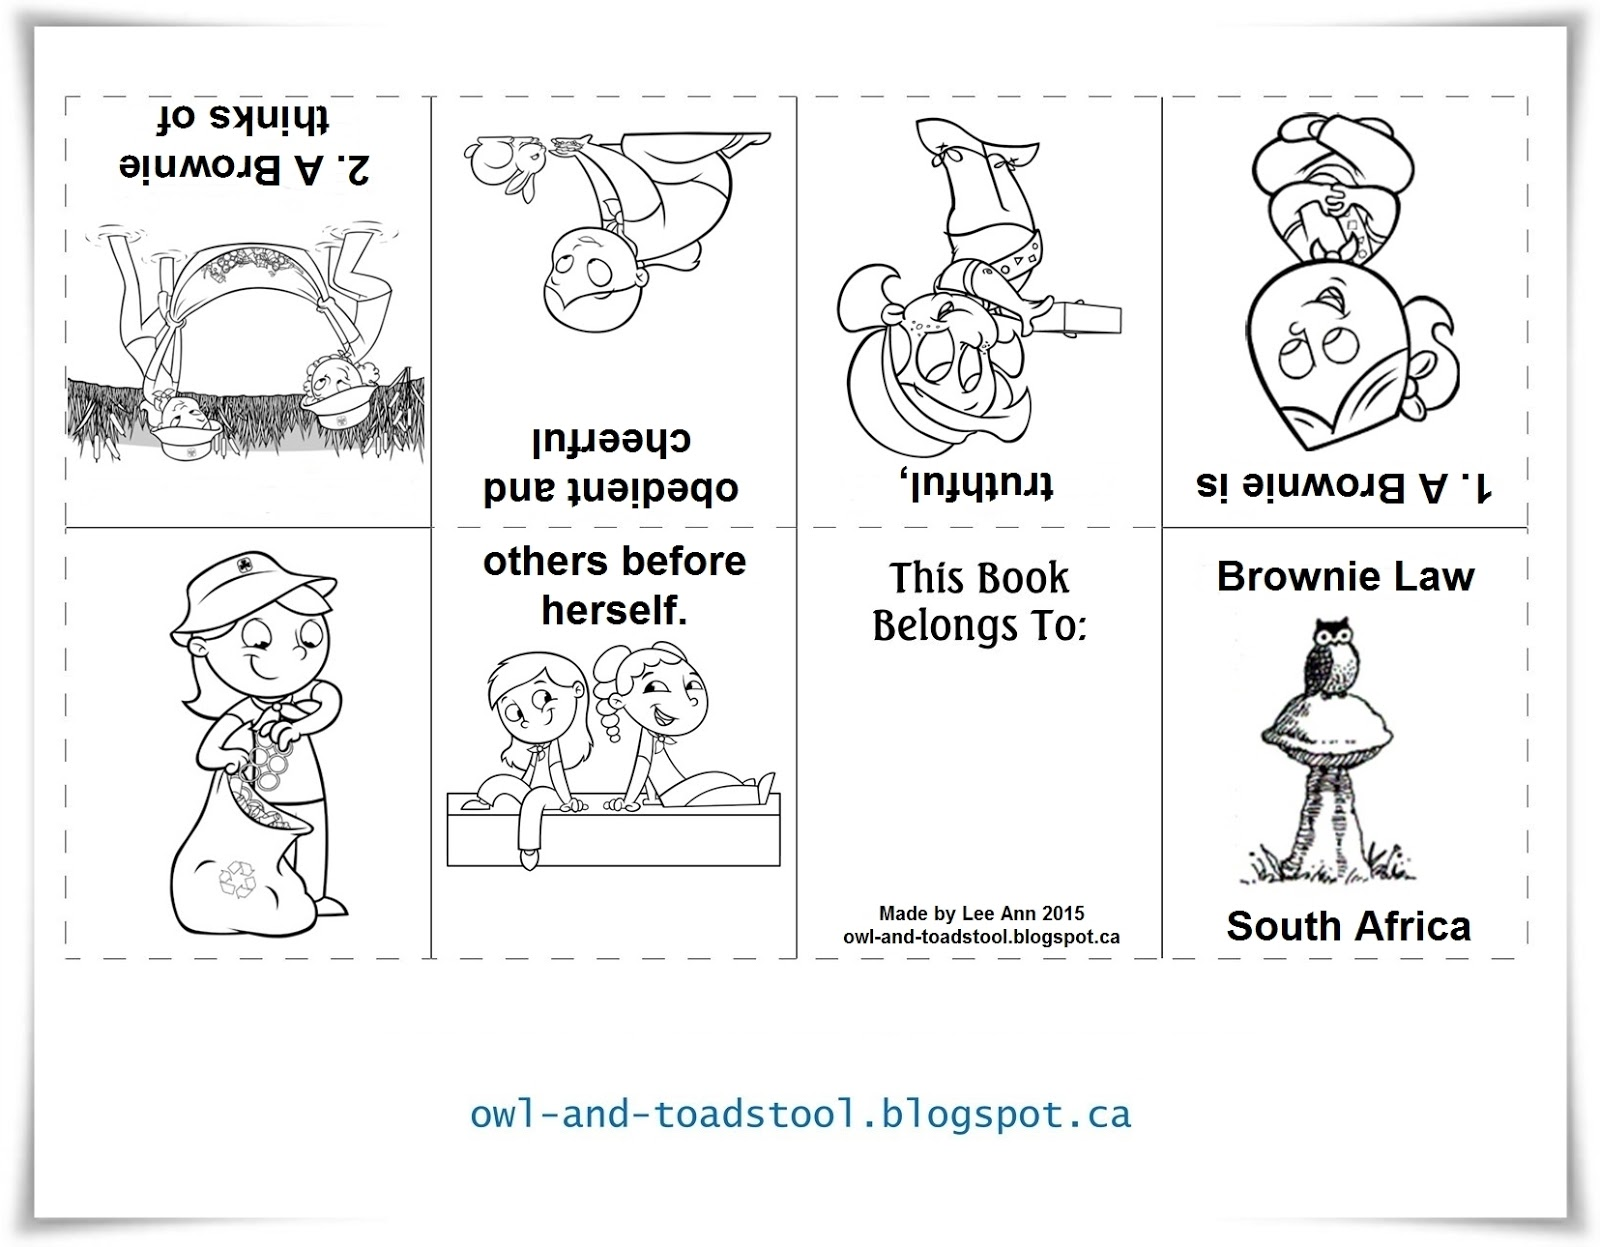 Owl & Toadstool: South Africa Promise & Law mini books